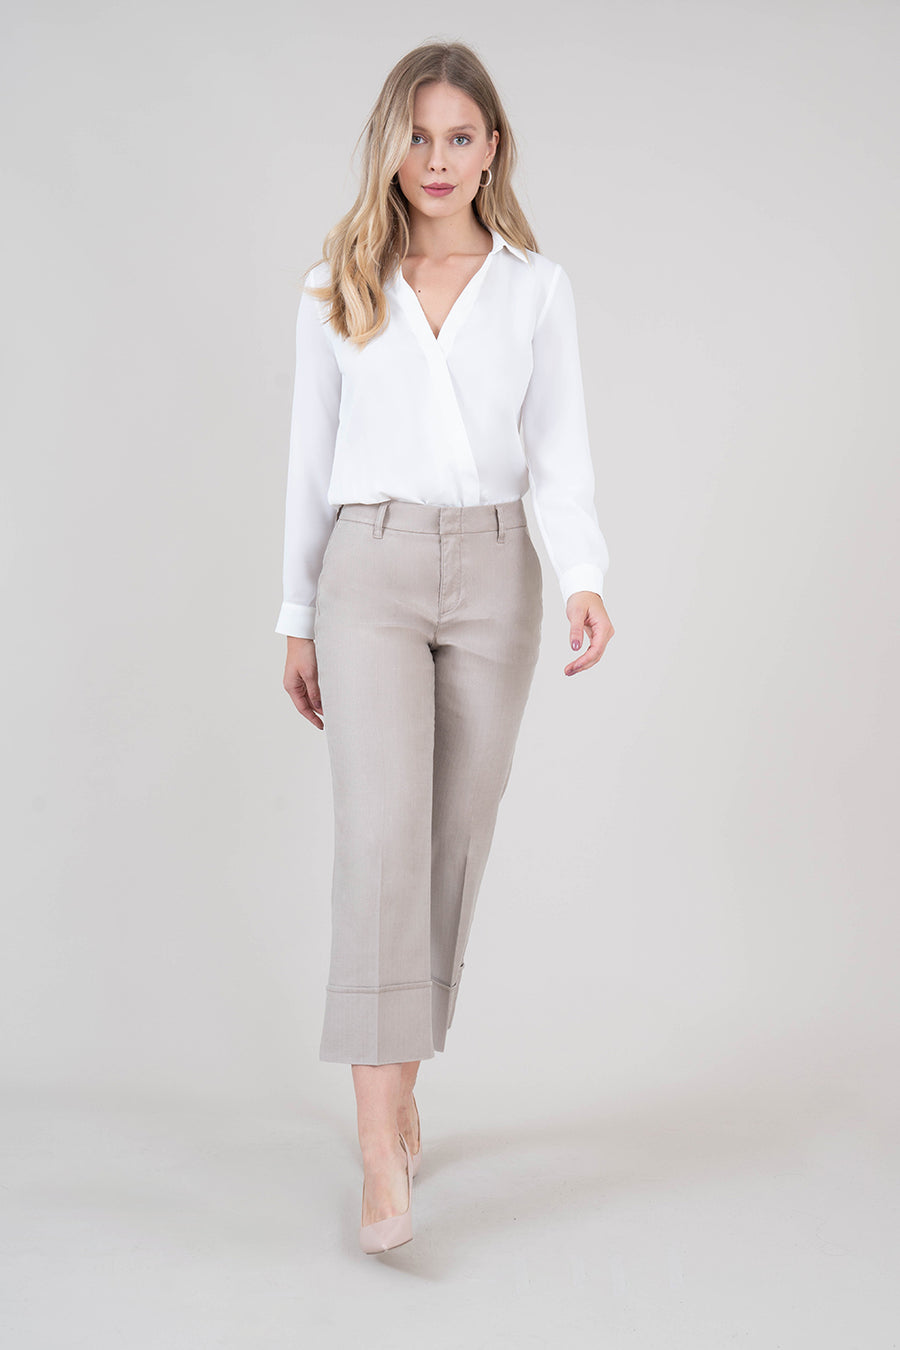 Lauren Linen Crop Pant - level99jeans